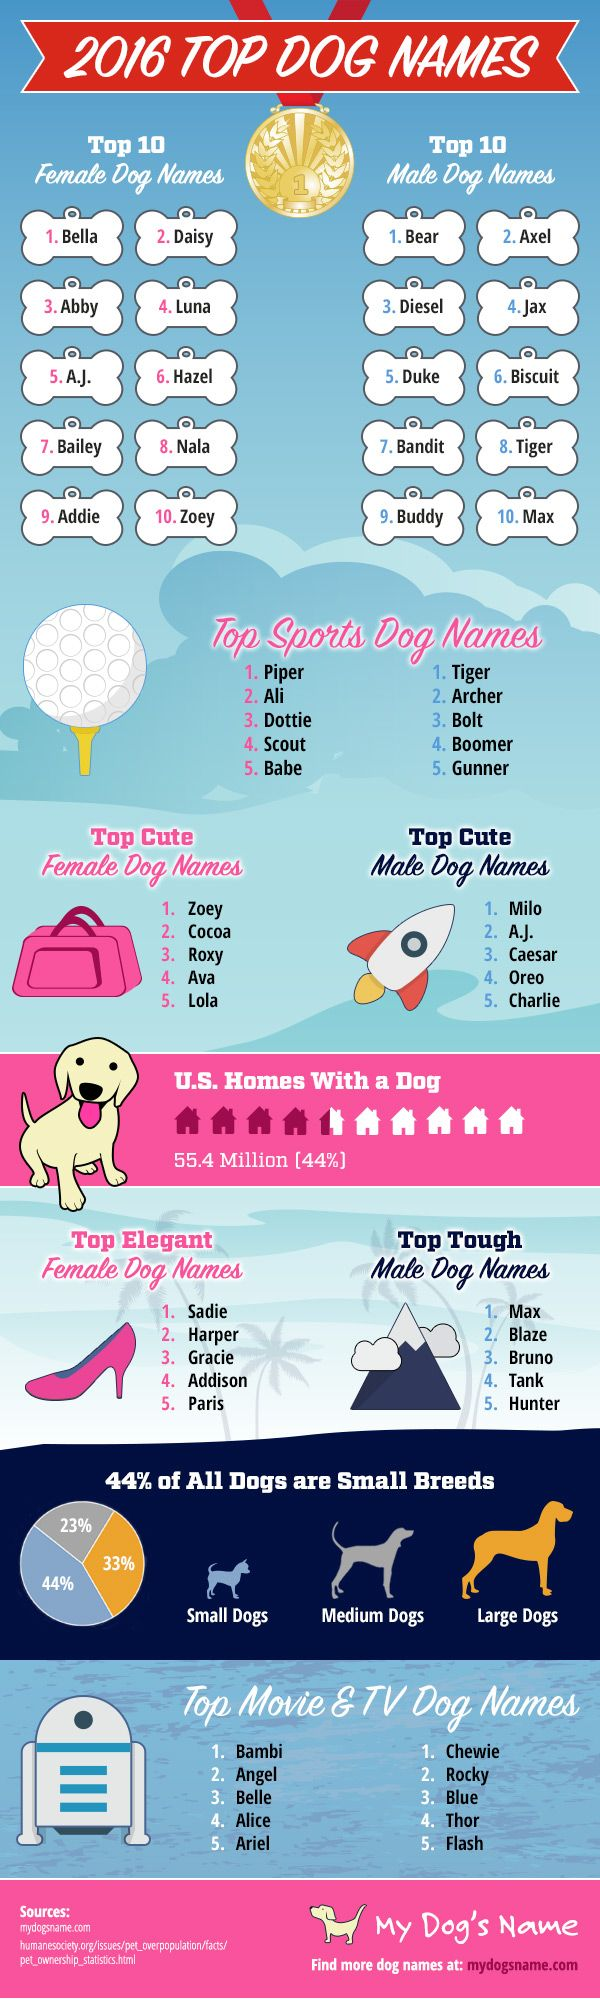 The top dog names of 2016. Find out which dog names are trendy and popular this year. So far, over 3 million new pup parents have used My Dog's Name, and these fun and fresh dog names ranked the highest on the list in 2016.